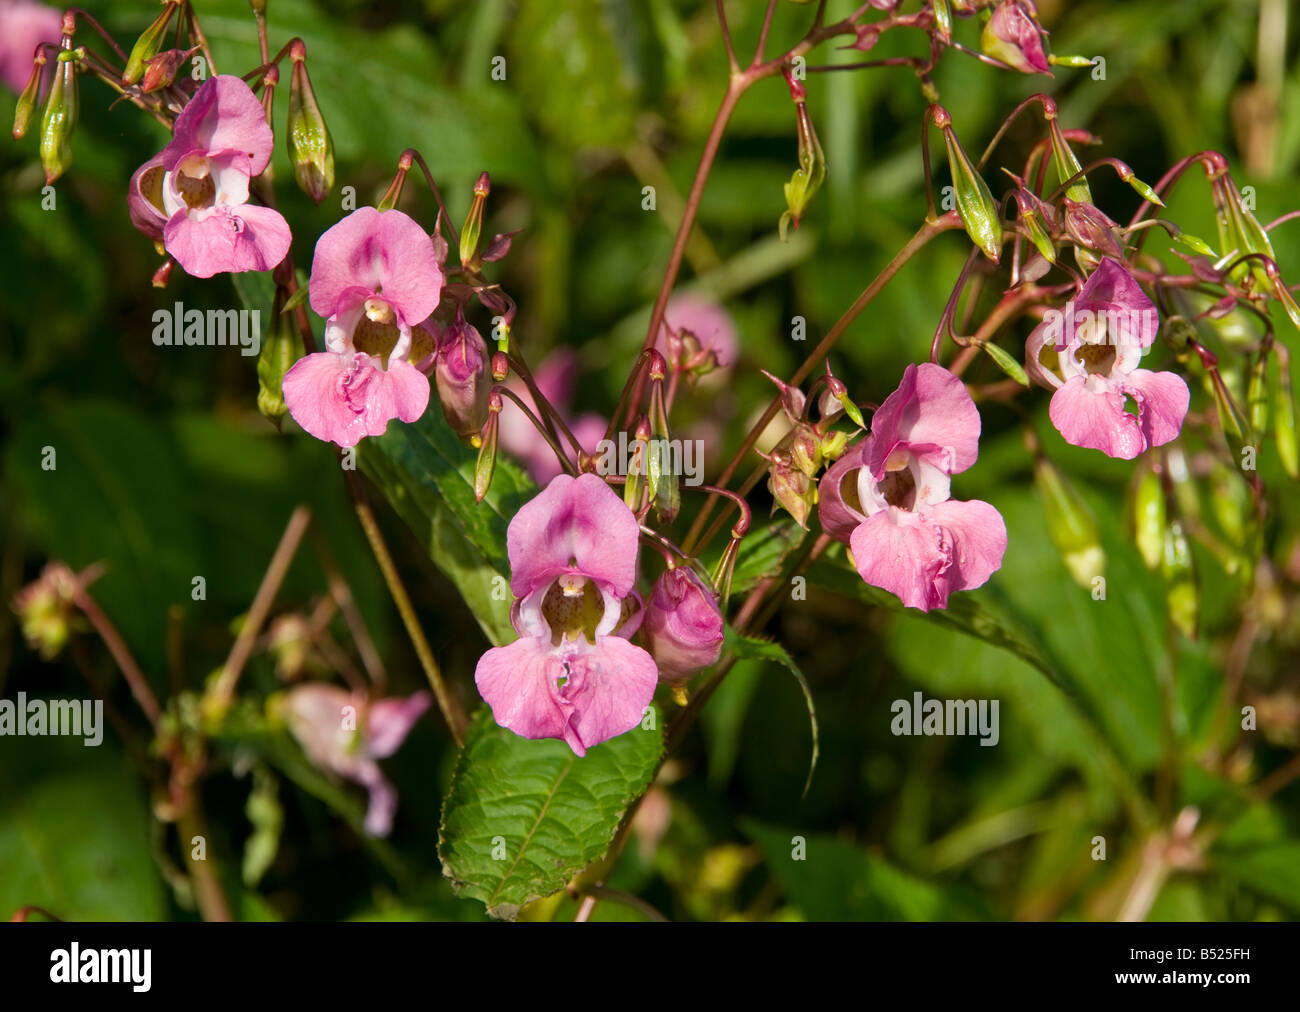 Flower heads of the Himalayan Balsam plant growing on the River Tweed - Stock Image